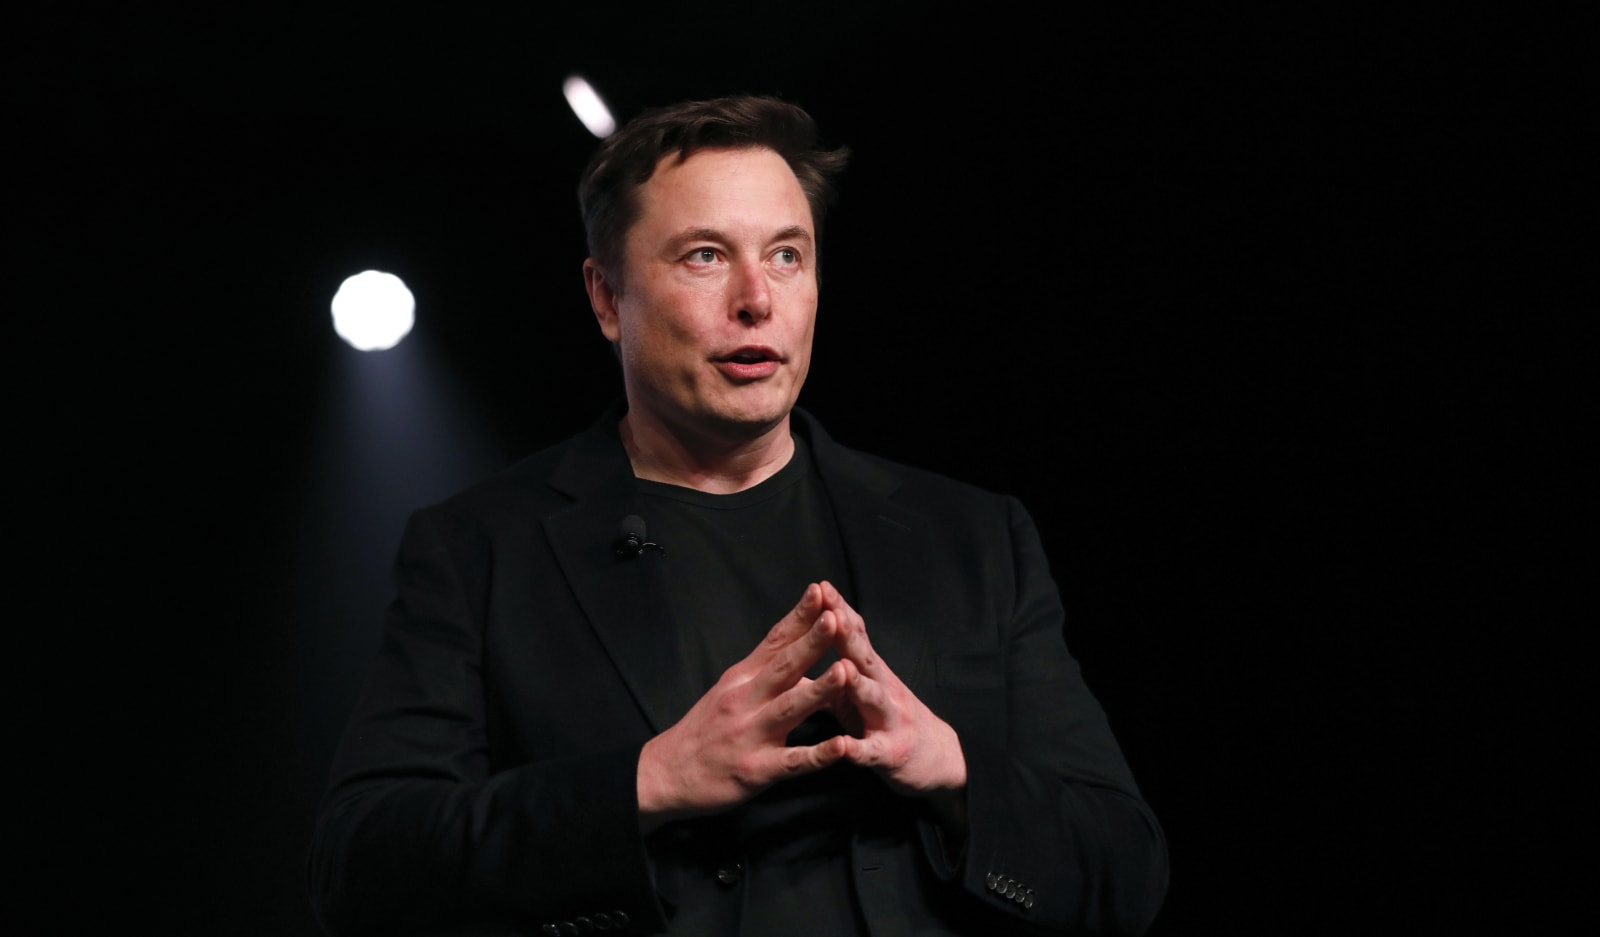 Tesla investigated Elon Musk after he reportedly pushed a former employee